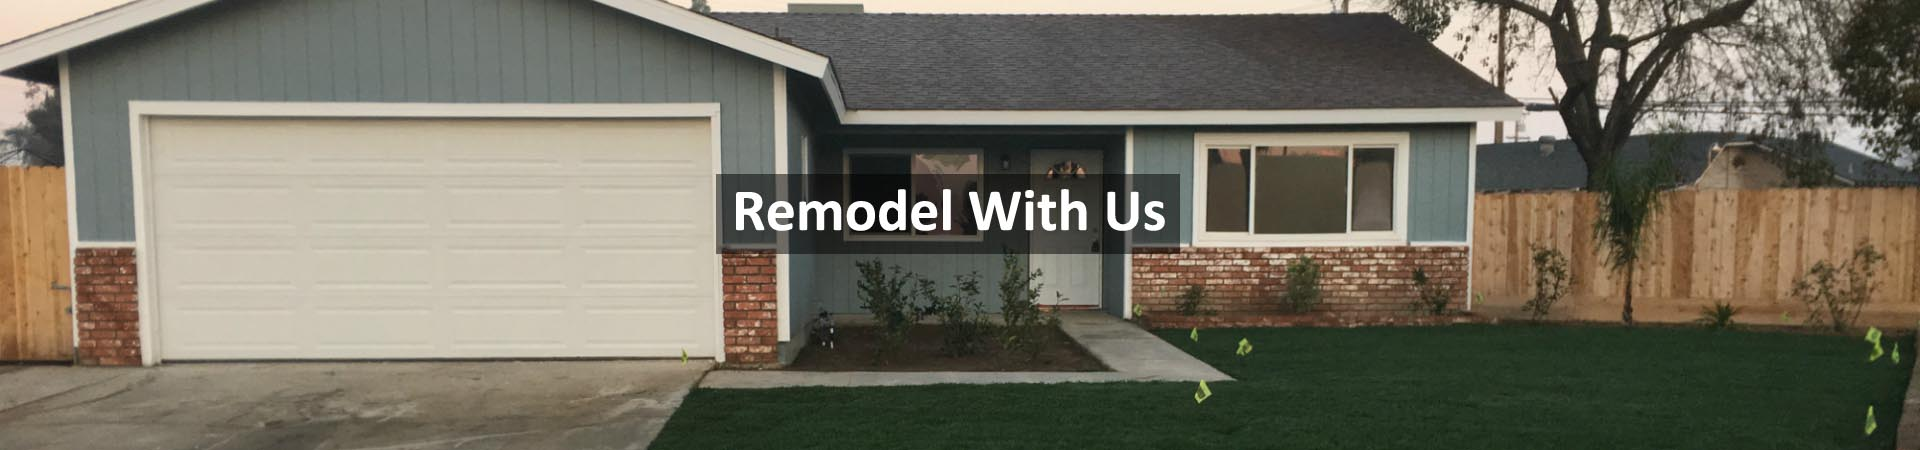 Remodeling - All Valley Housing Services